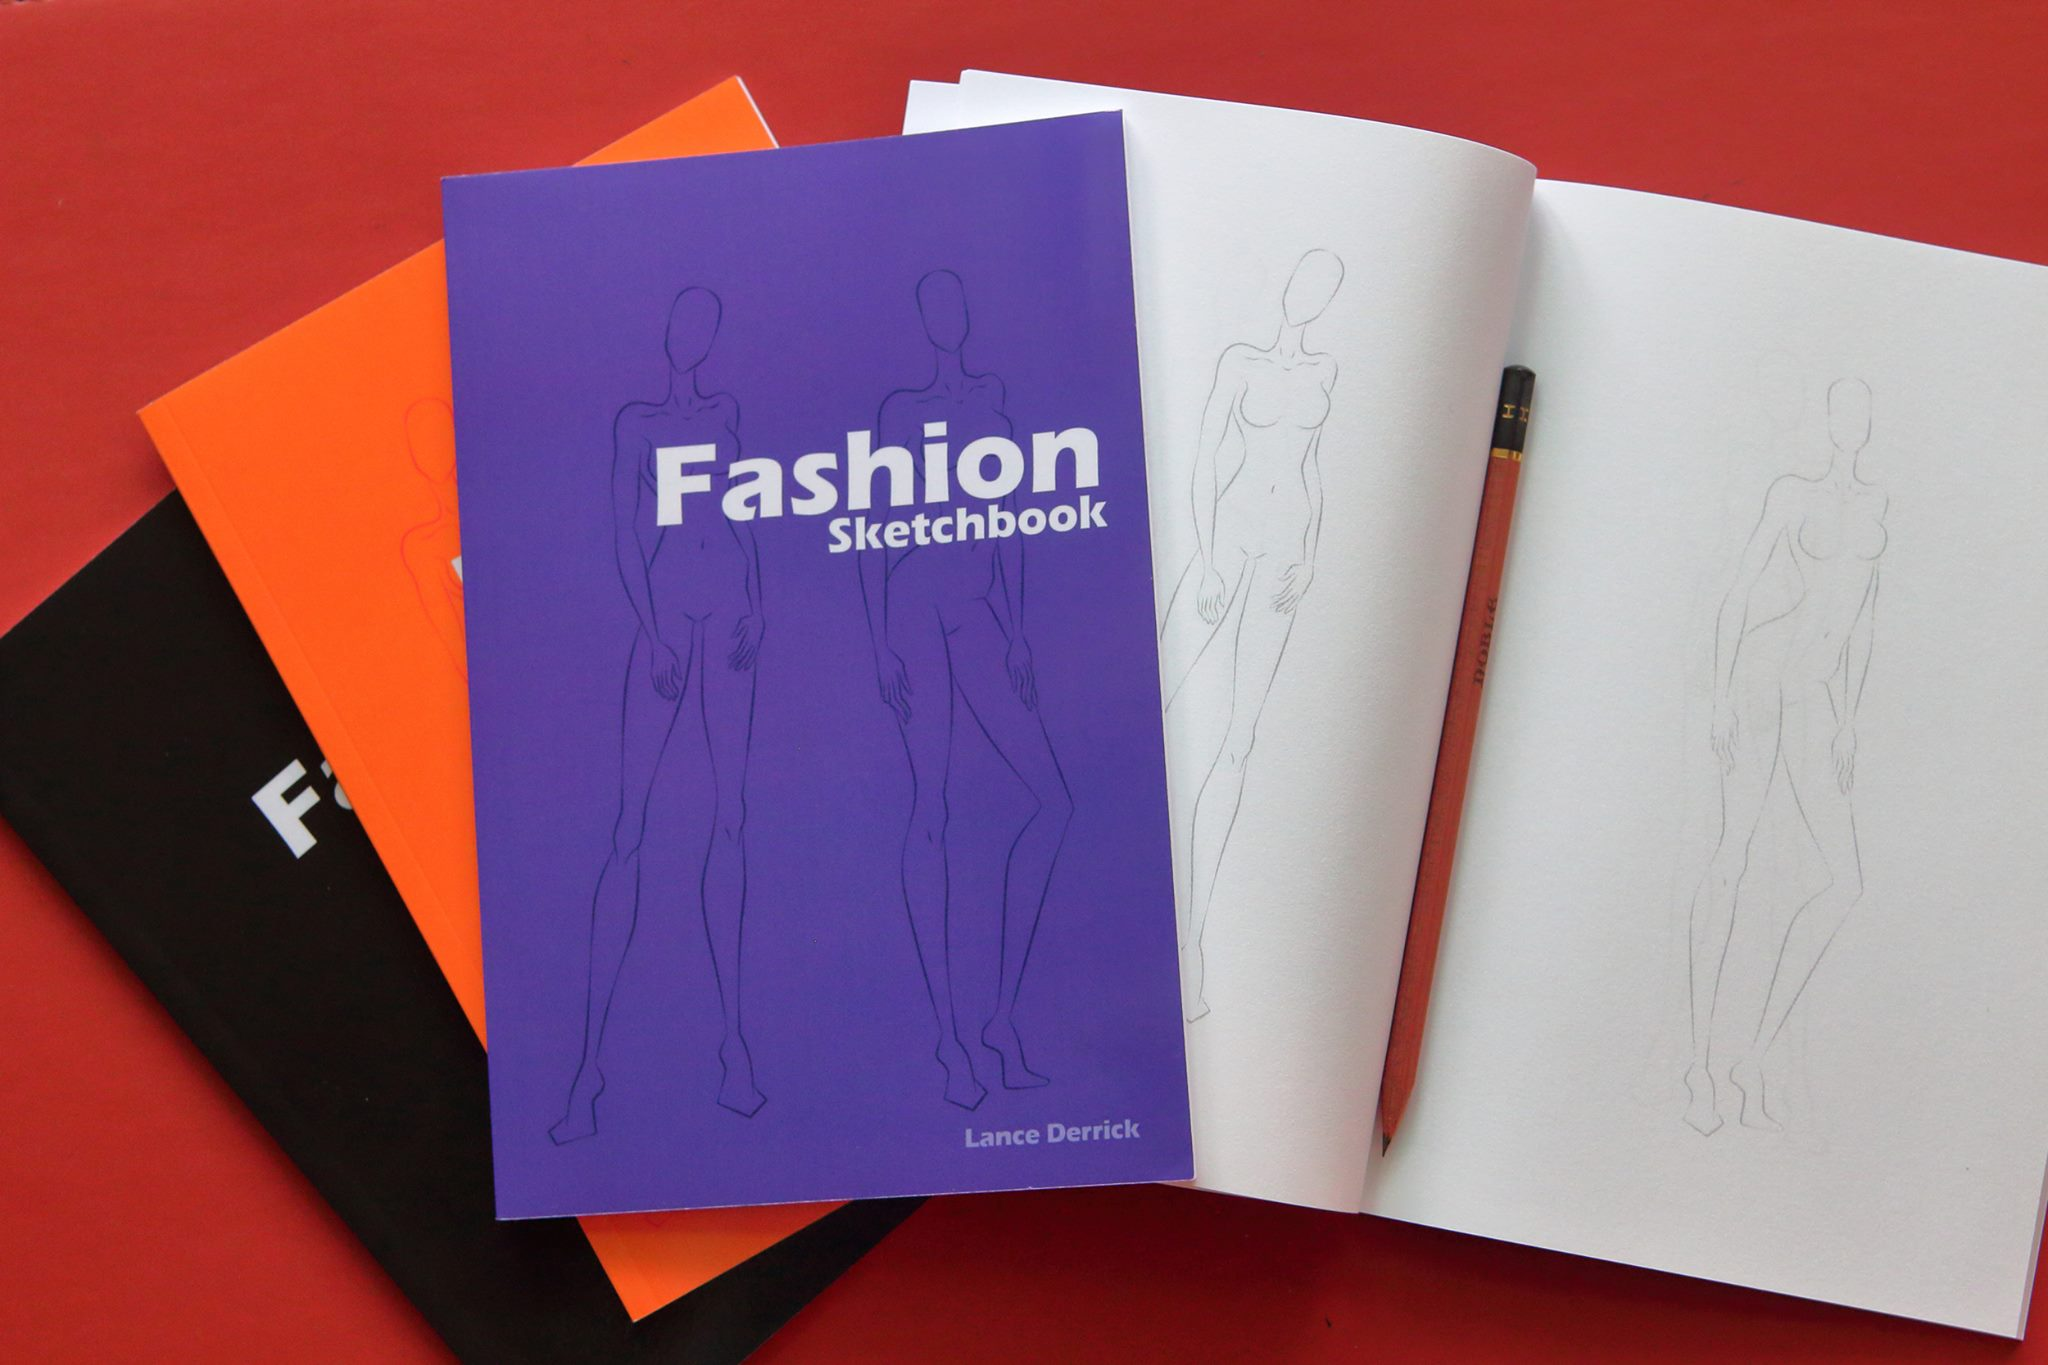 My first fashion sketchbook is now selling on Amazon.